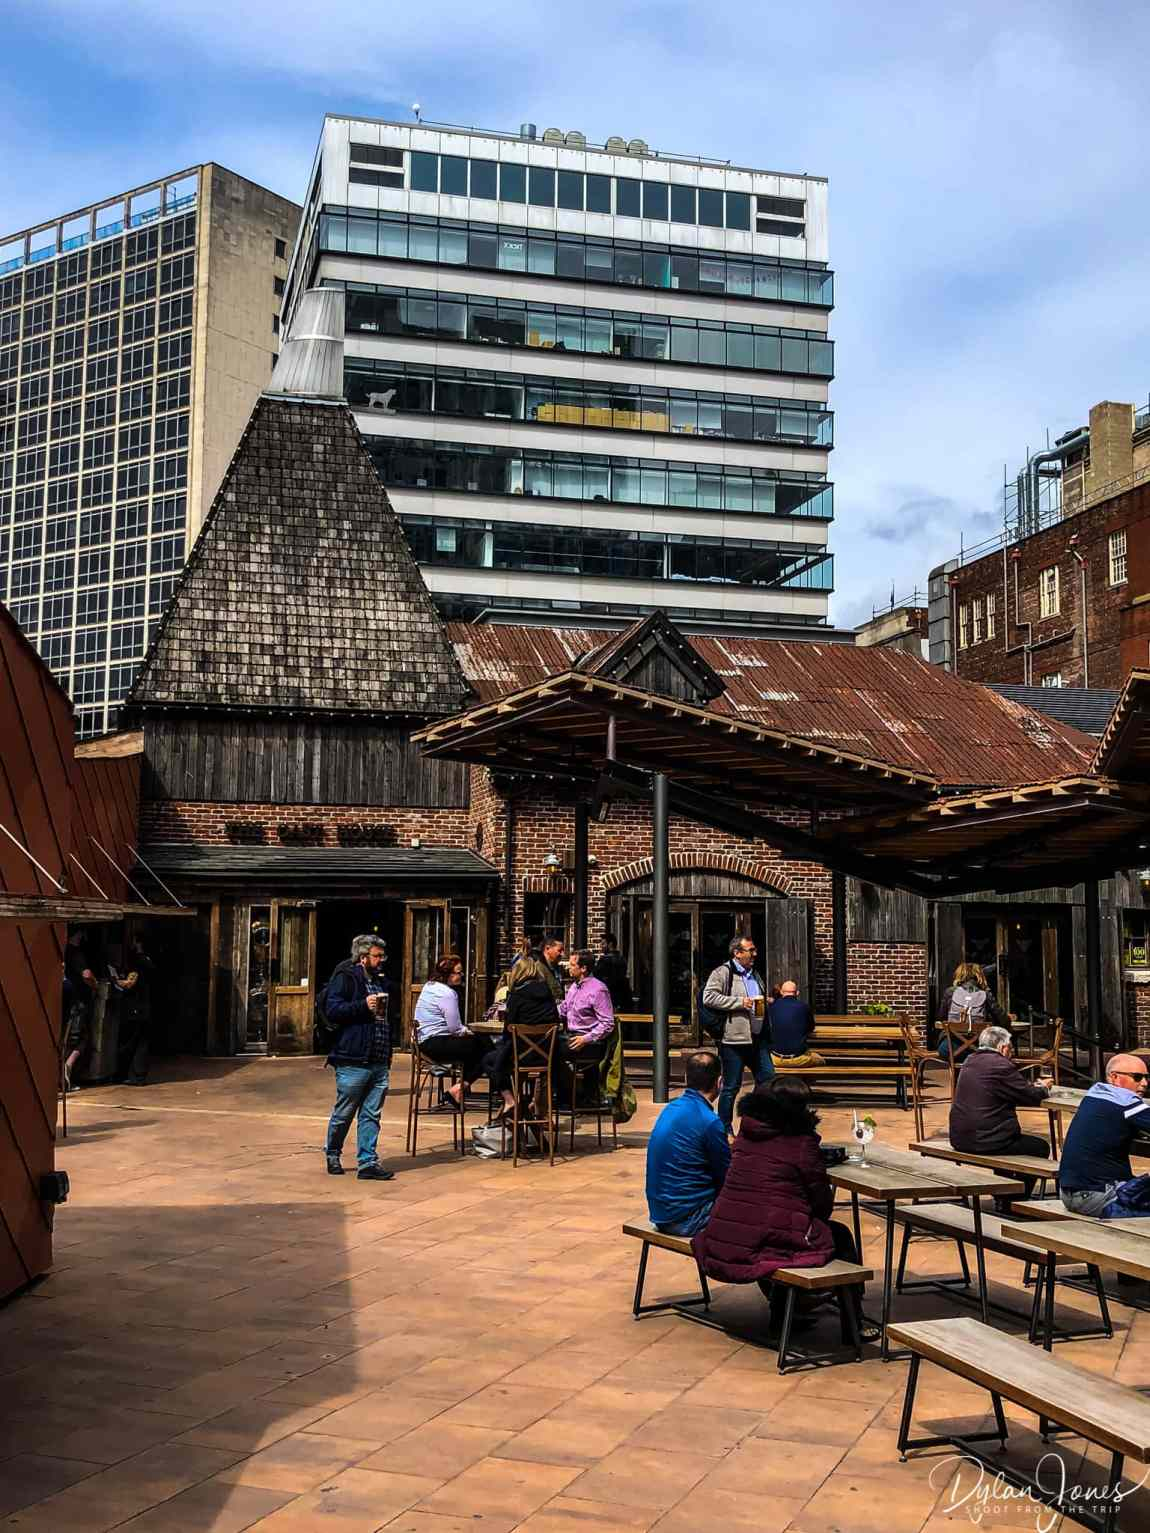 Visiting The Oast House in Spinningfields during 48 hours in Manchester